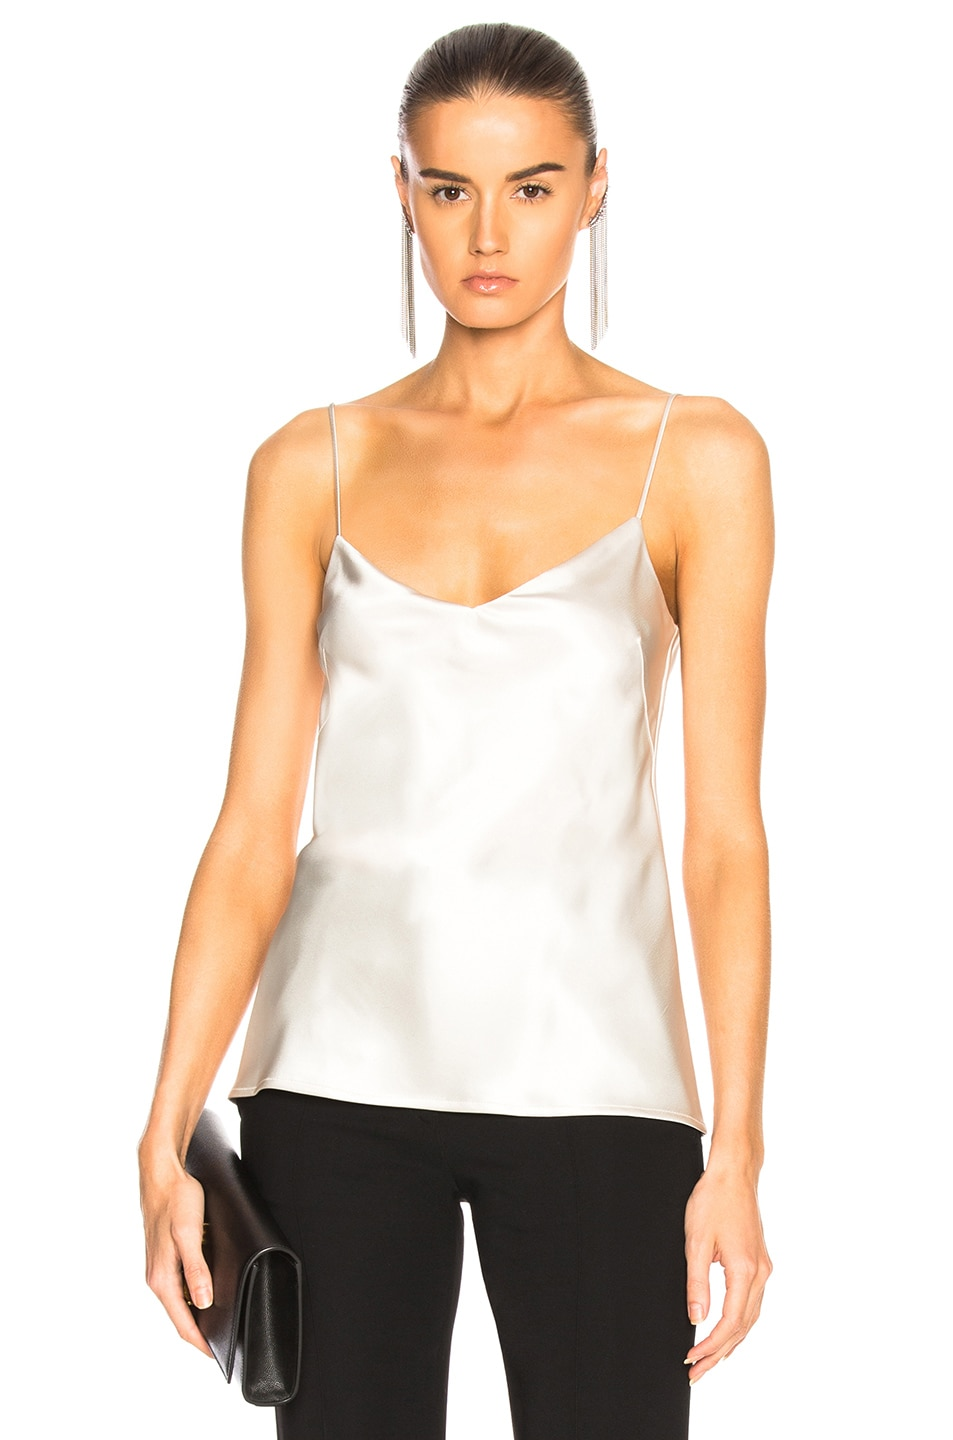 Galvan GALVAN SATIN V NECK CAMISOLE TOP IN METALLICS